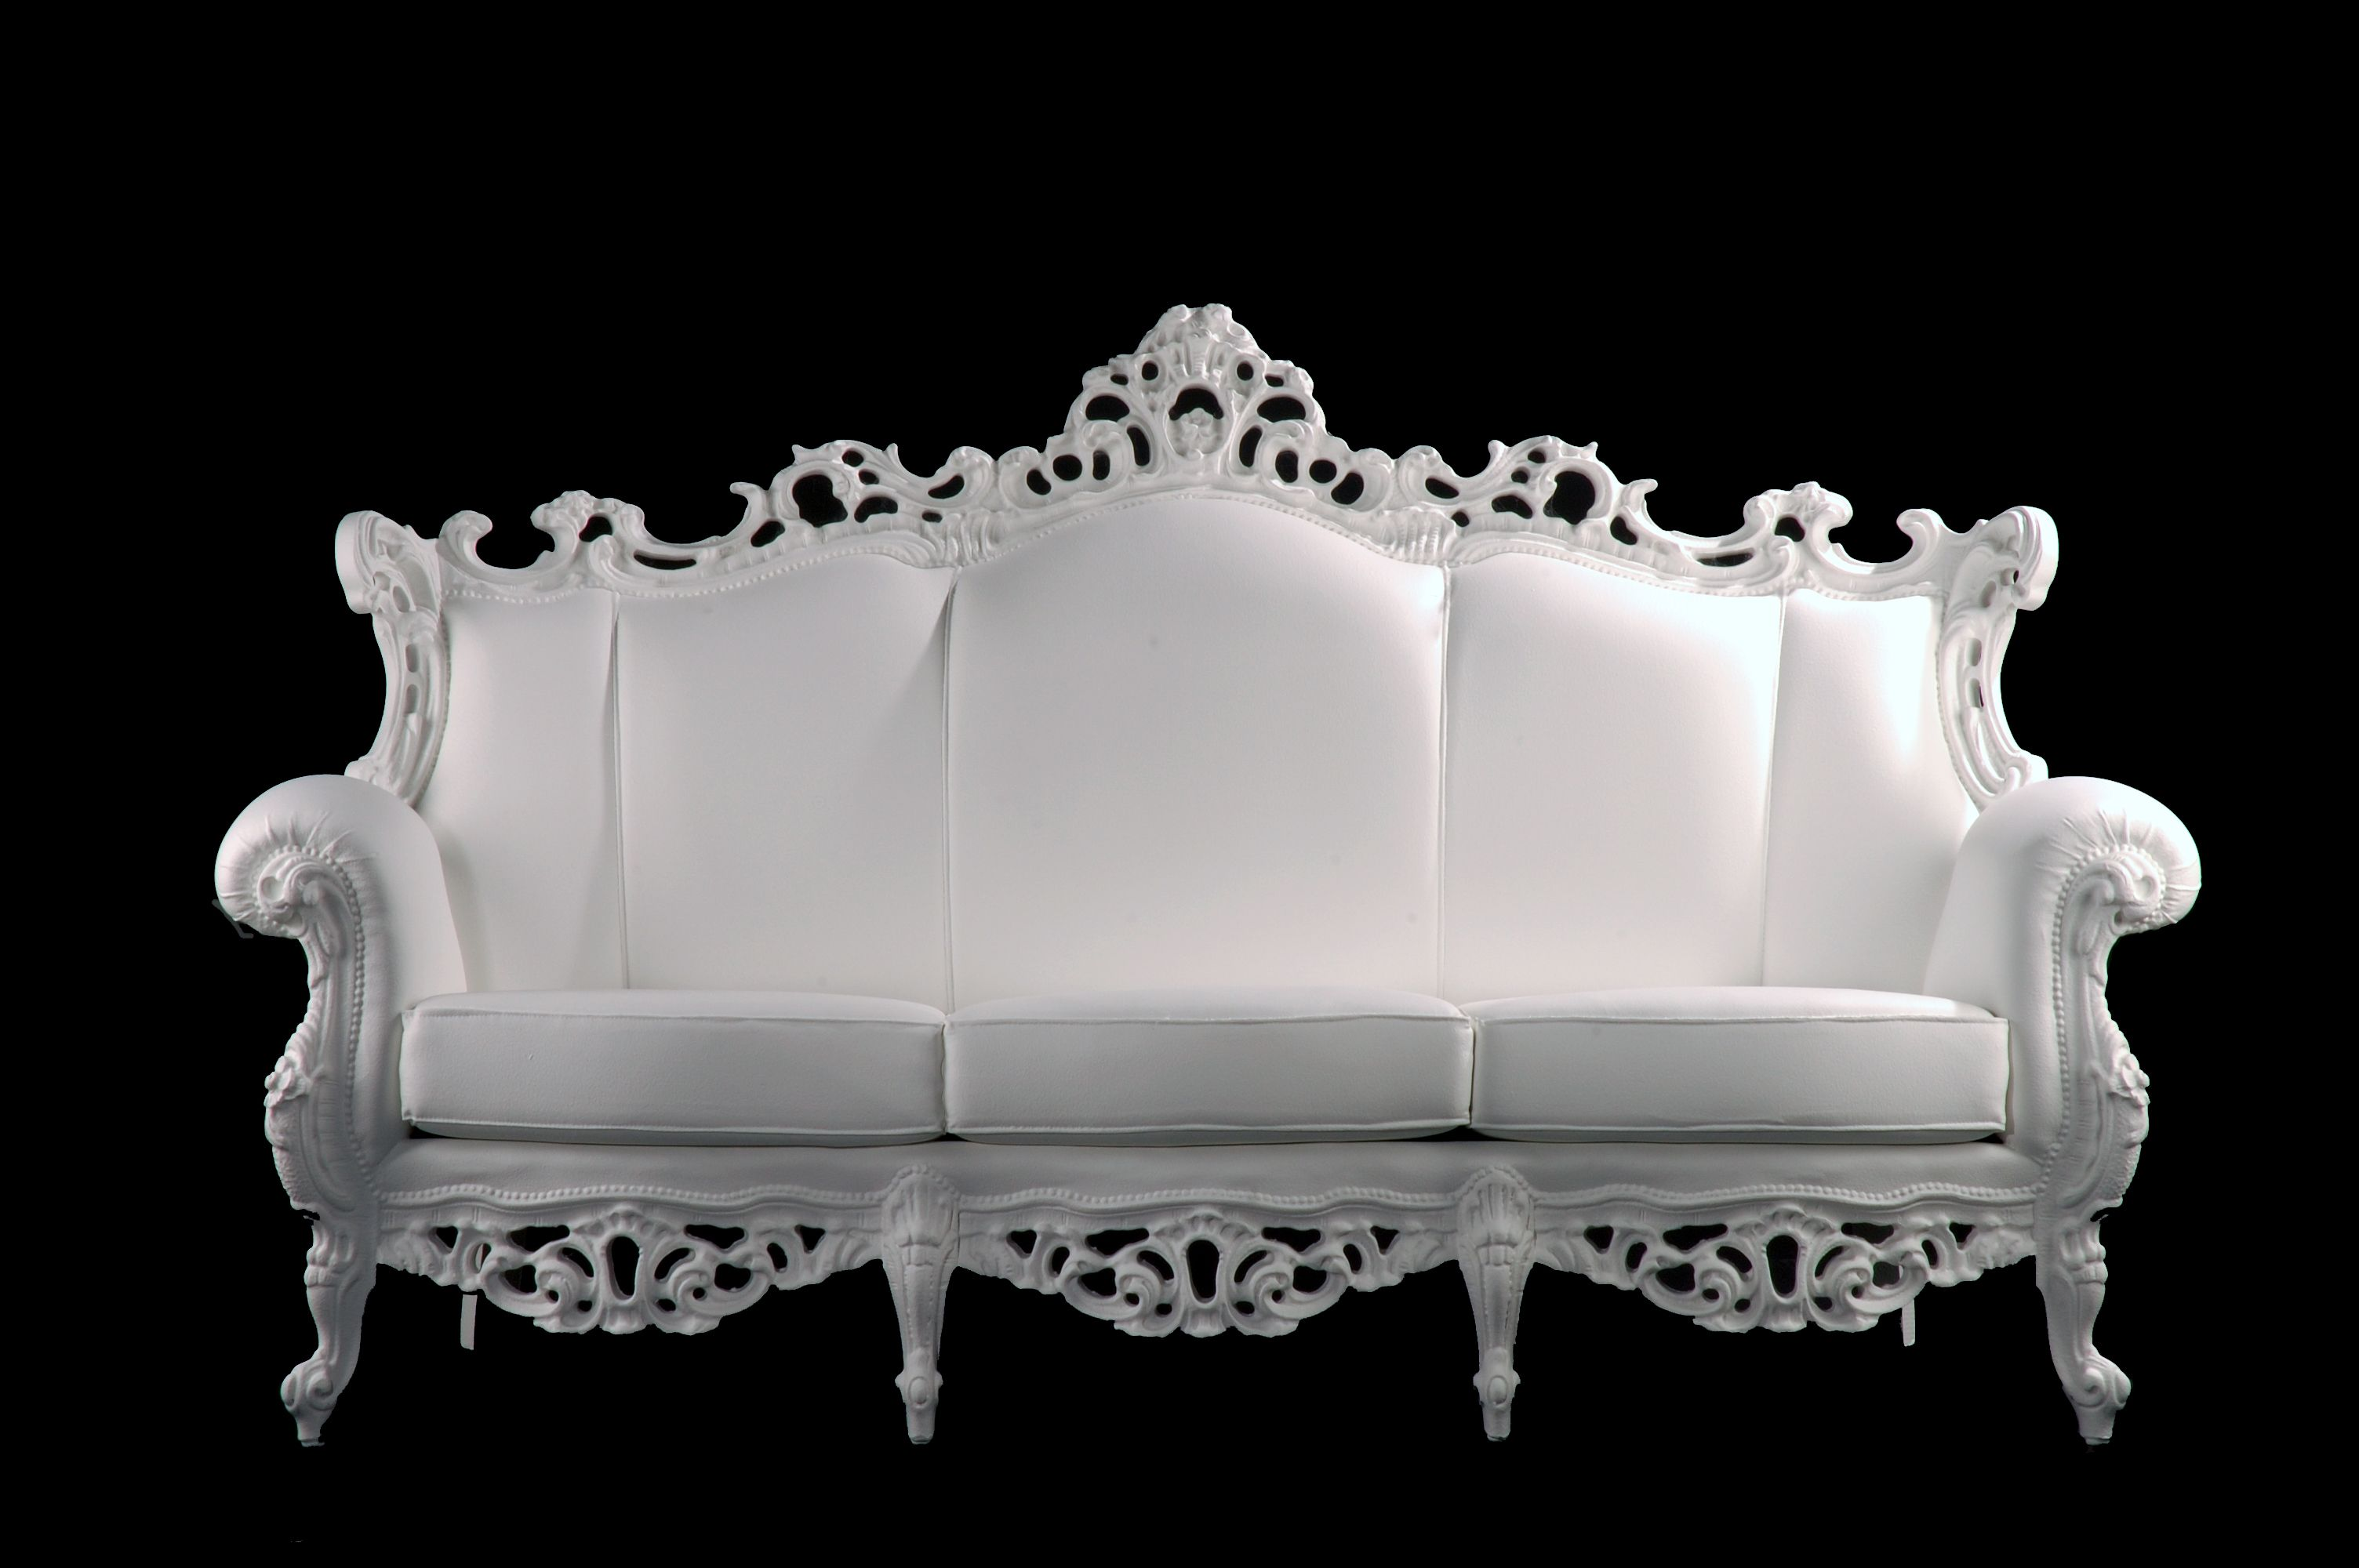 The Royal White Couch Carved Sofa Upholstered Sofa Furniture